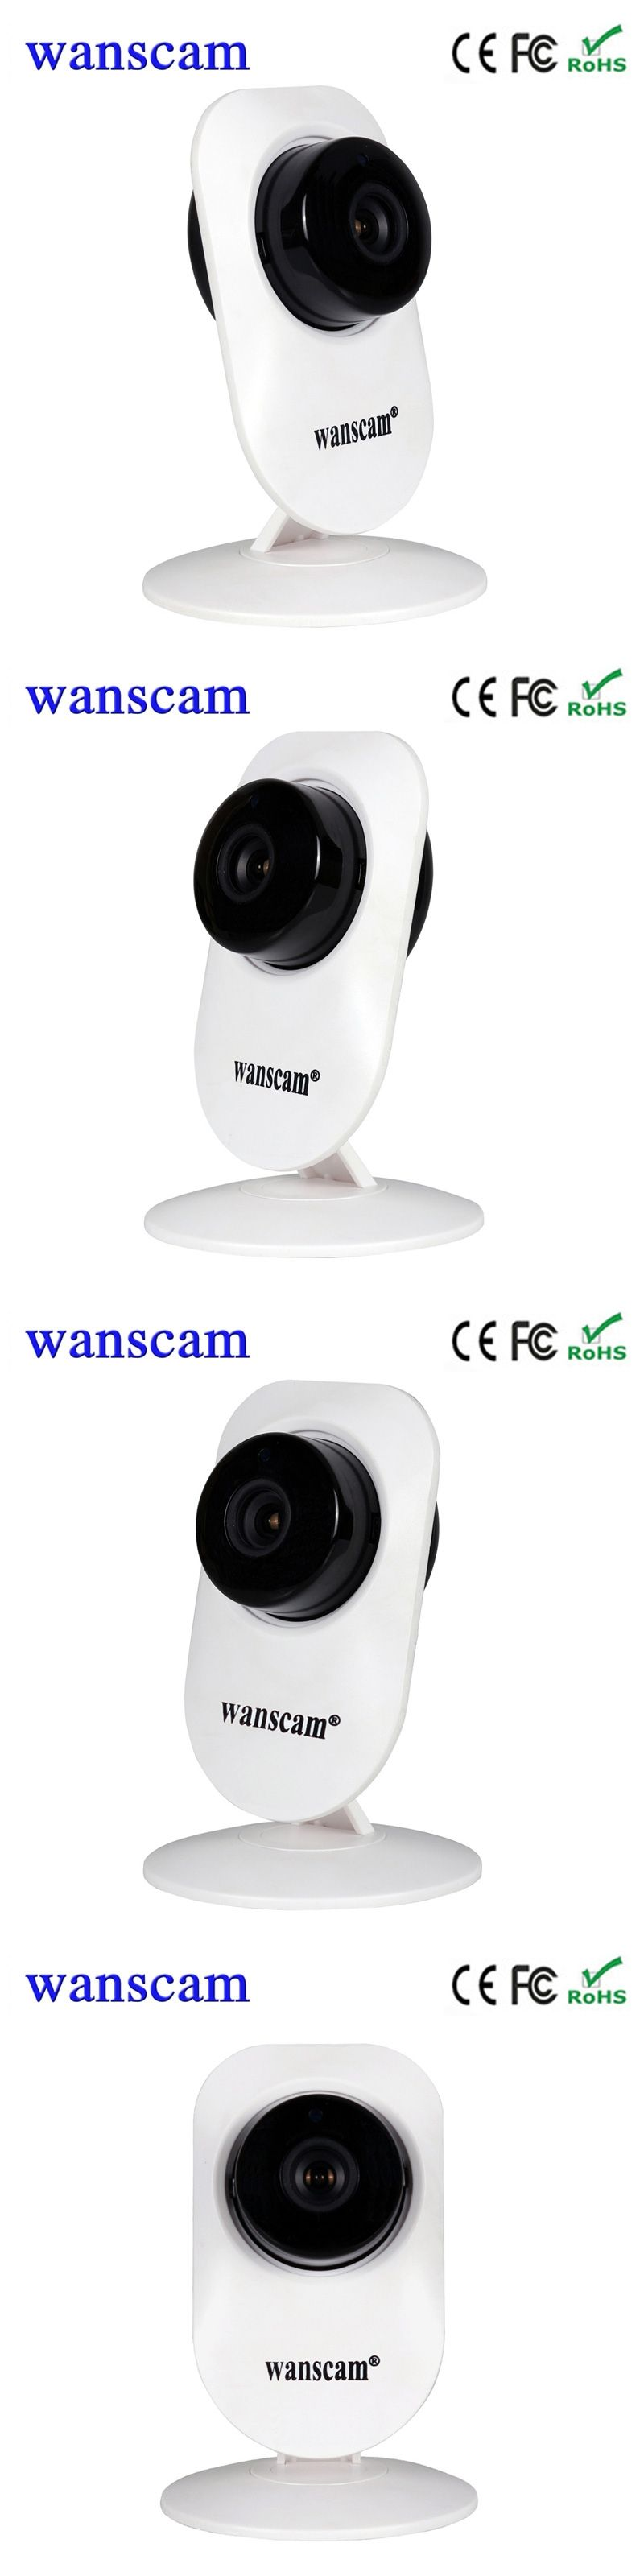 Wanscam P2P 720P Mini CCTV camera wireless wifi baby monitor cheap wifi IP camera home security